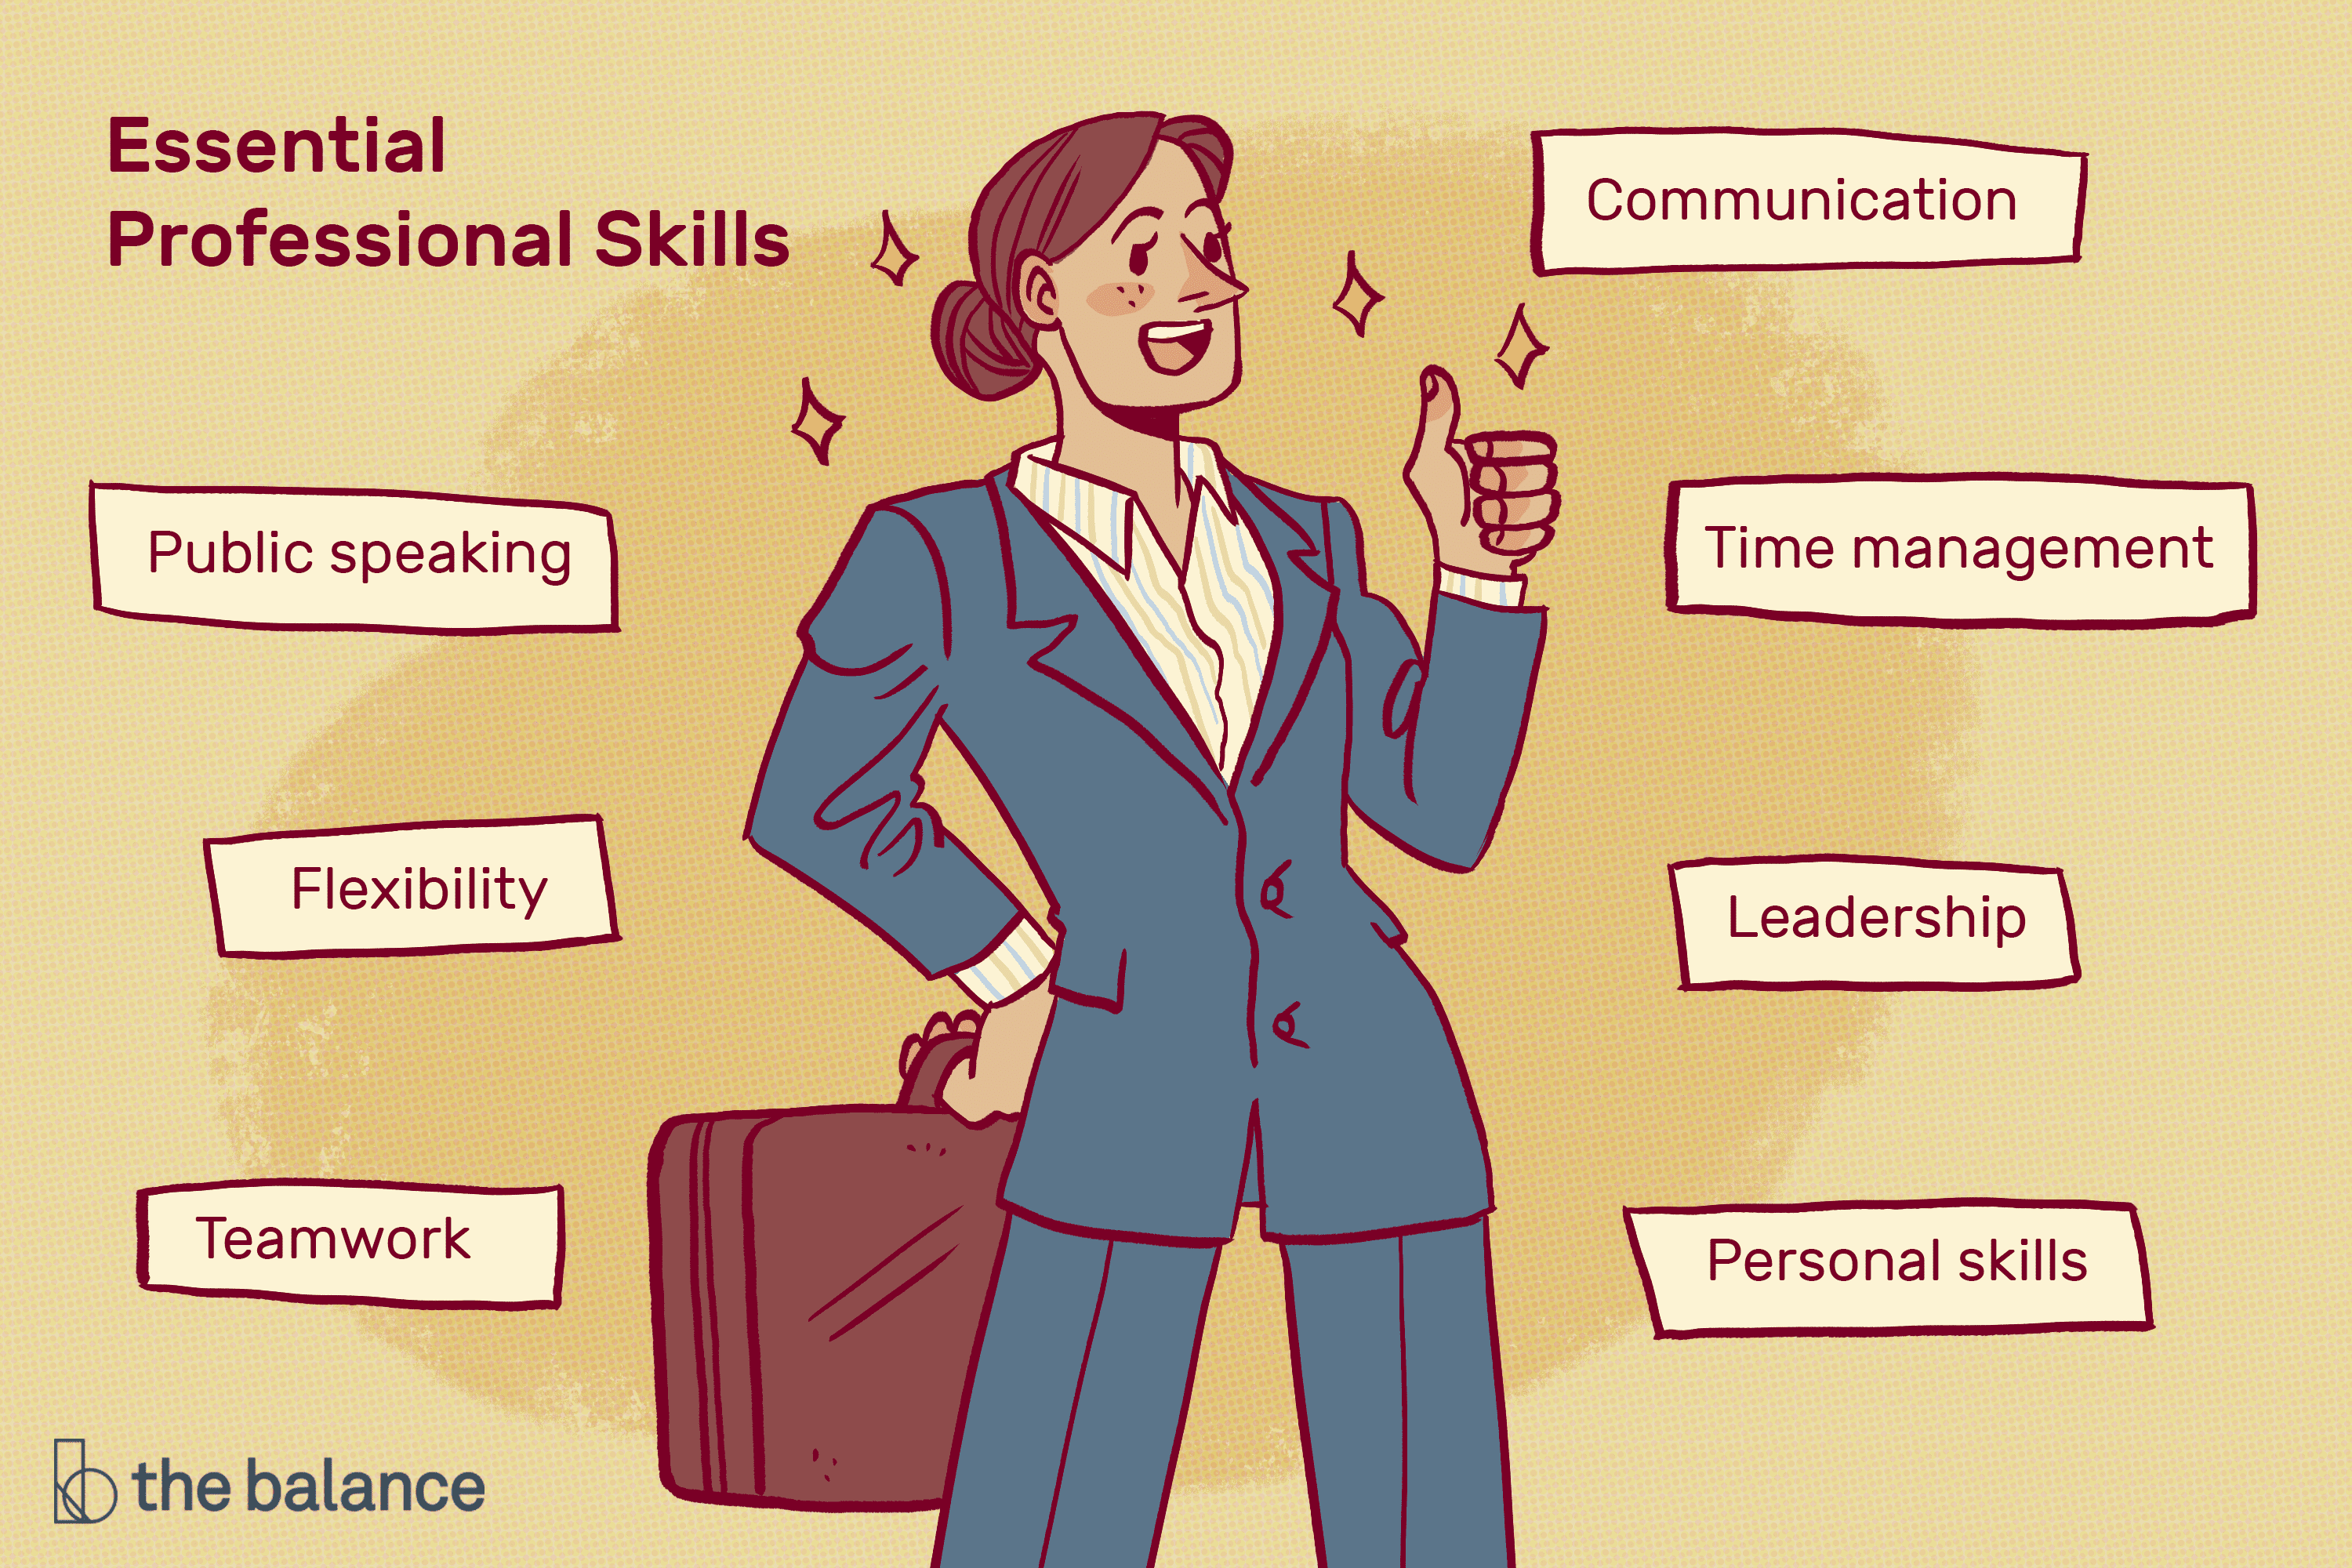 Top Professional Skills That Employers Look For In Candidates For Employment With Descriptions And Examples Employability Skills Interview Skills Career Coach